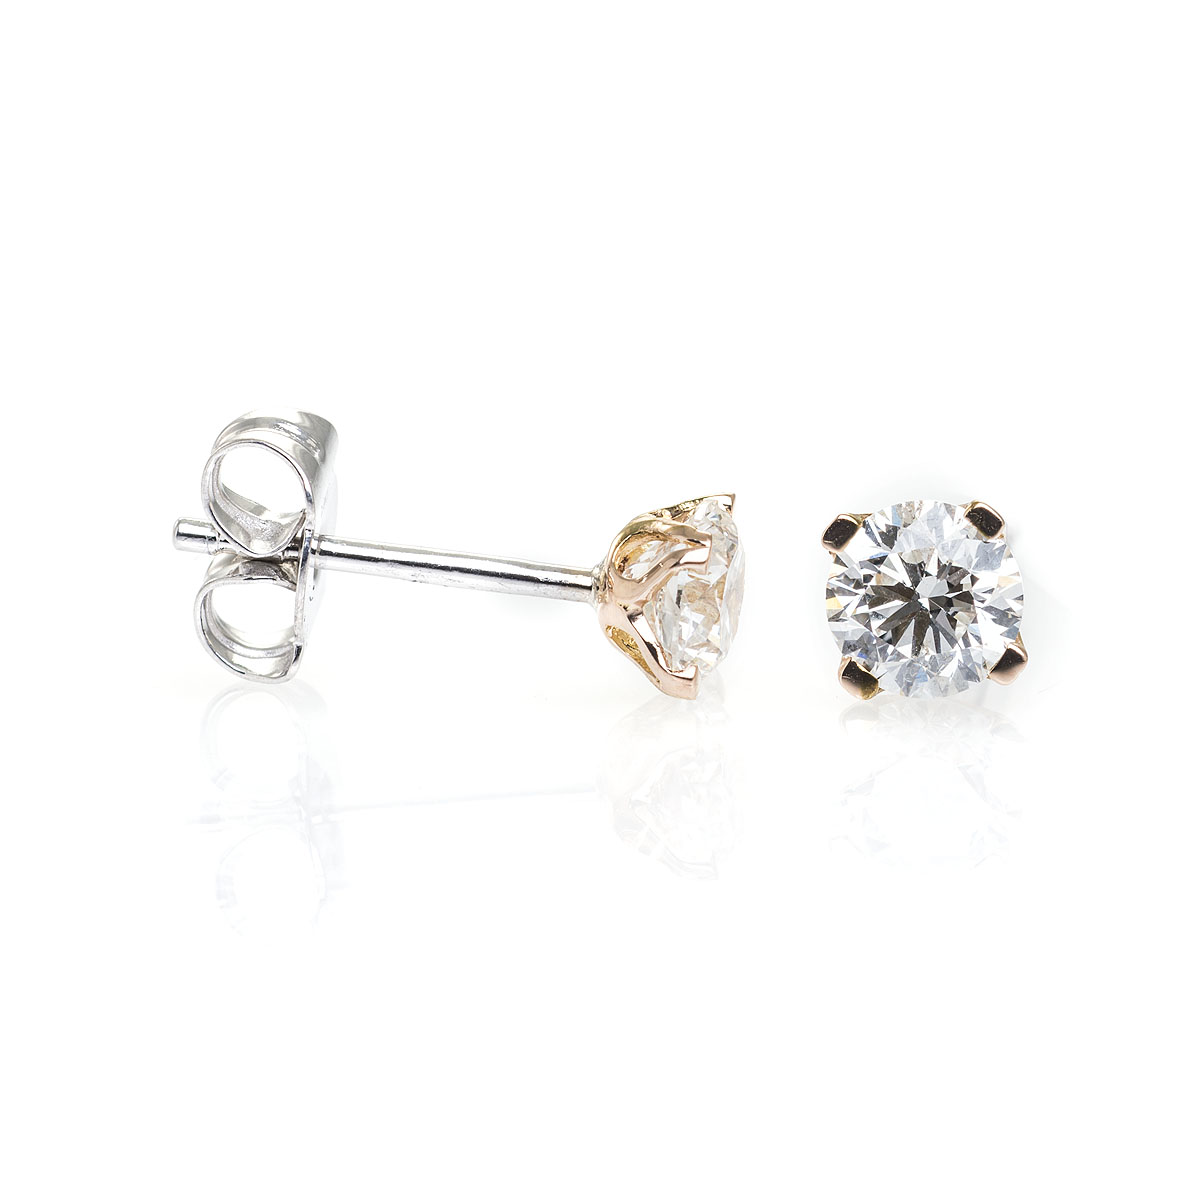 Buy 18ct Rose Gold Diamond Four Claw Omega studs Online